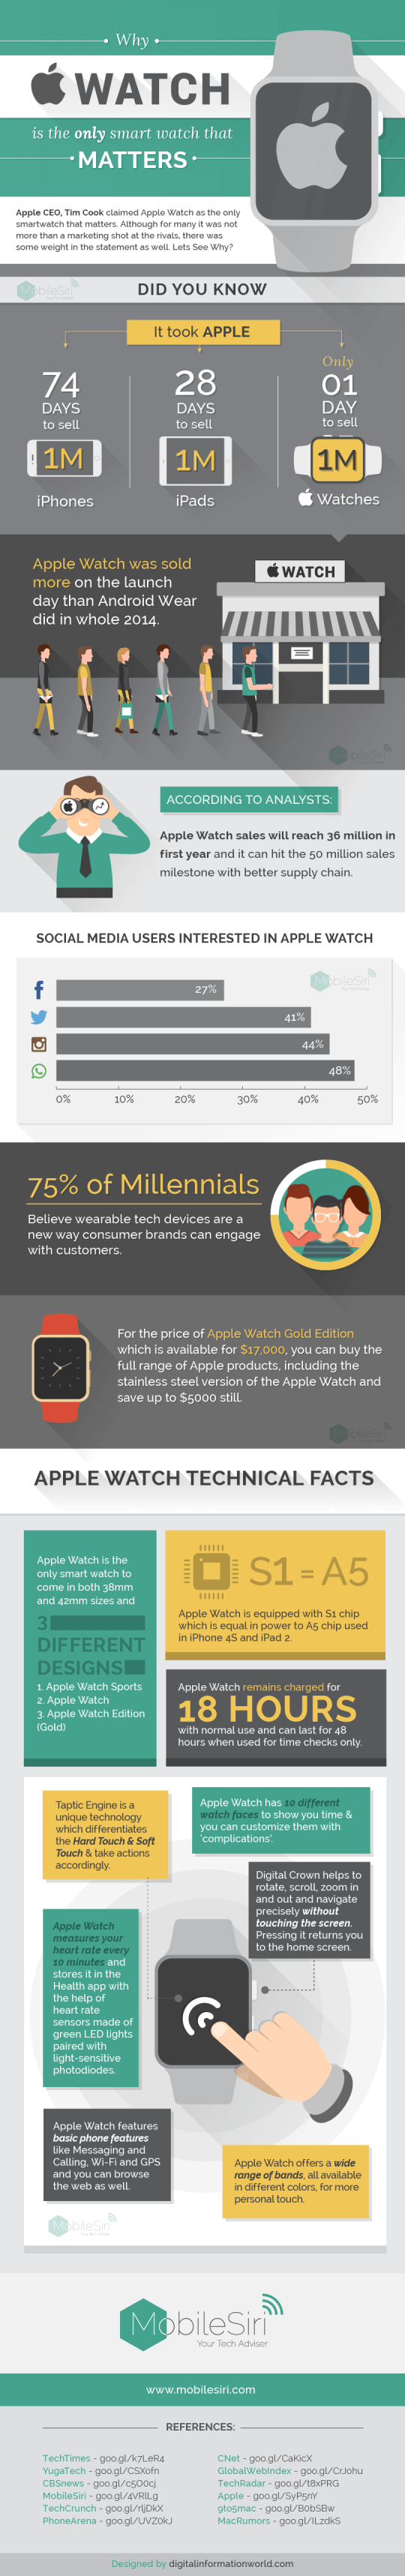 Why Apple Watch matters